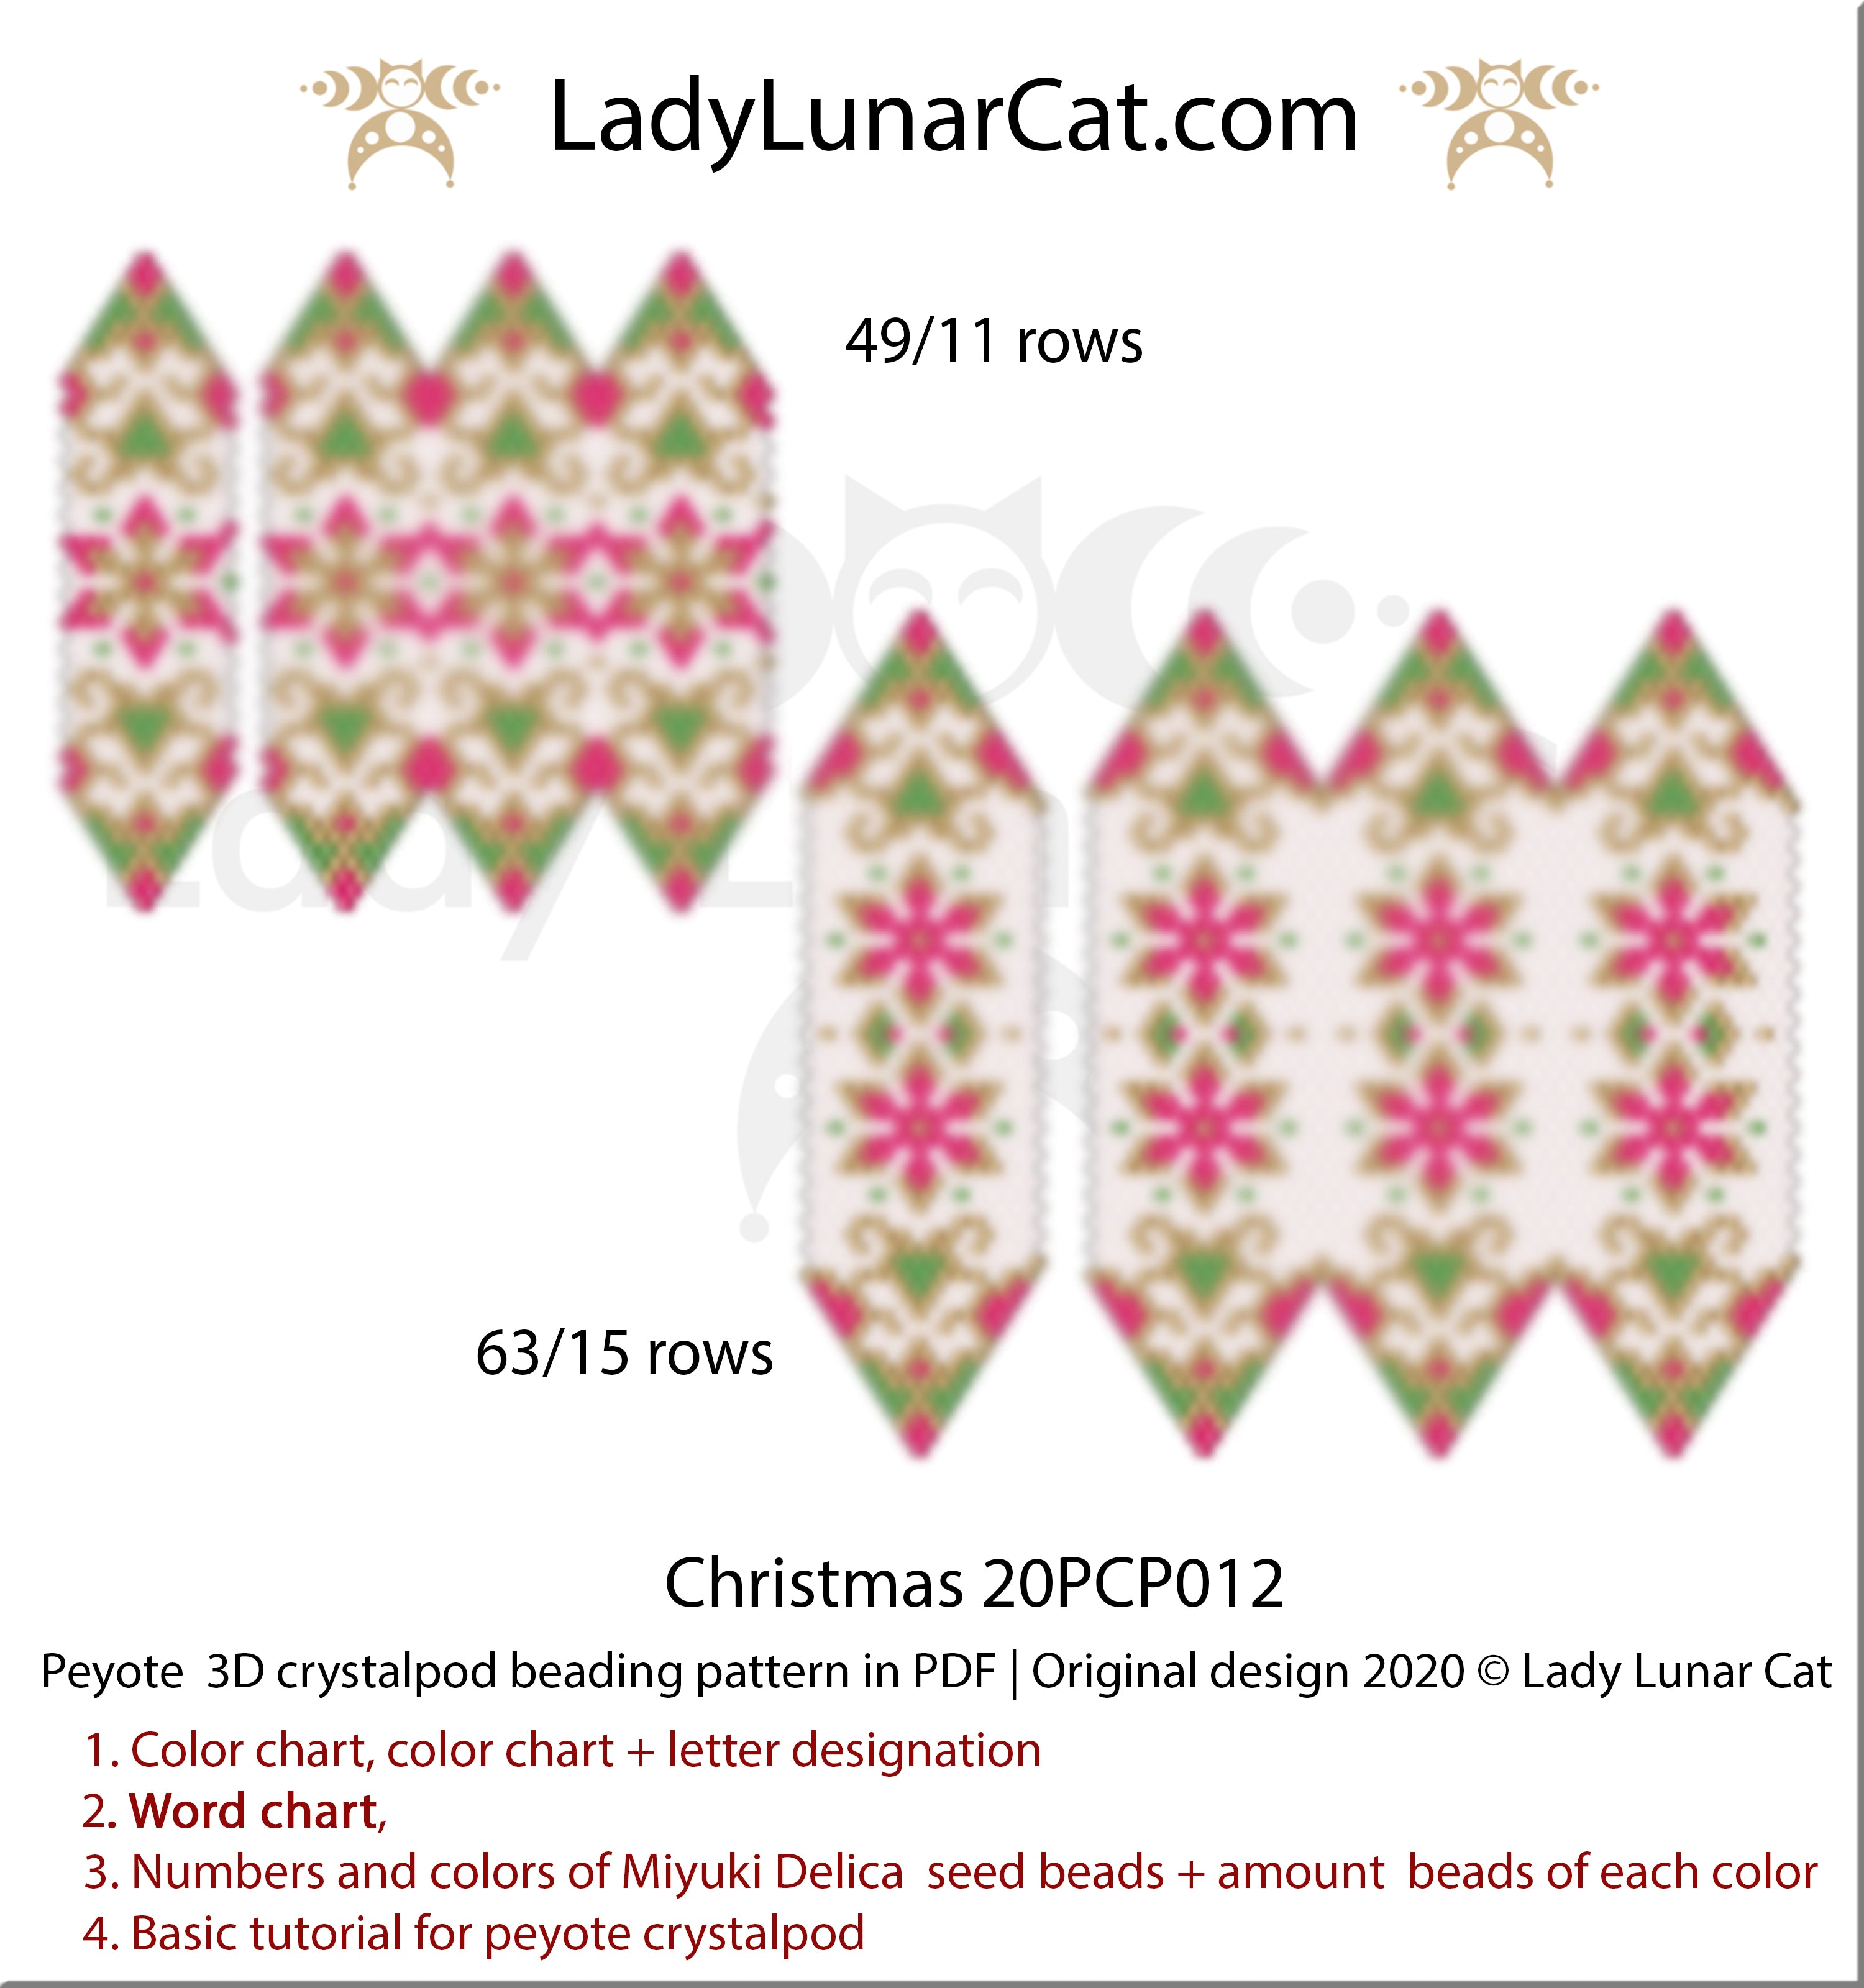 3d Peyote crystal pod patterns Christmas 20PCP012  by Lady Lunar Cat